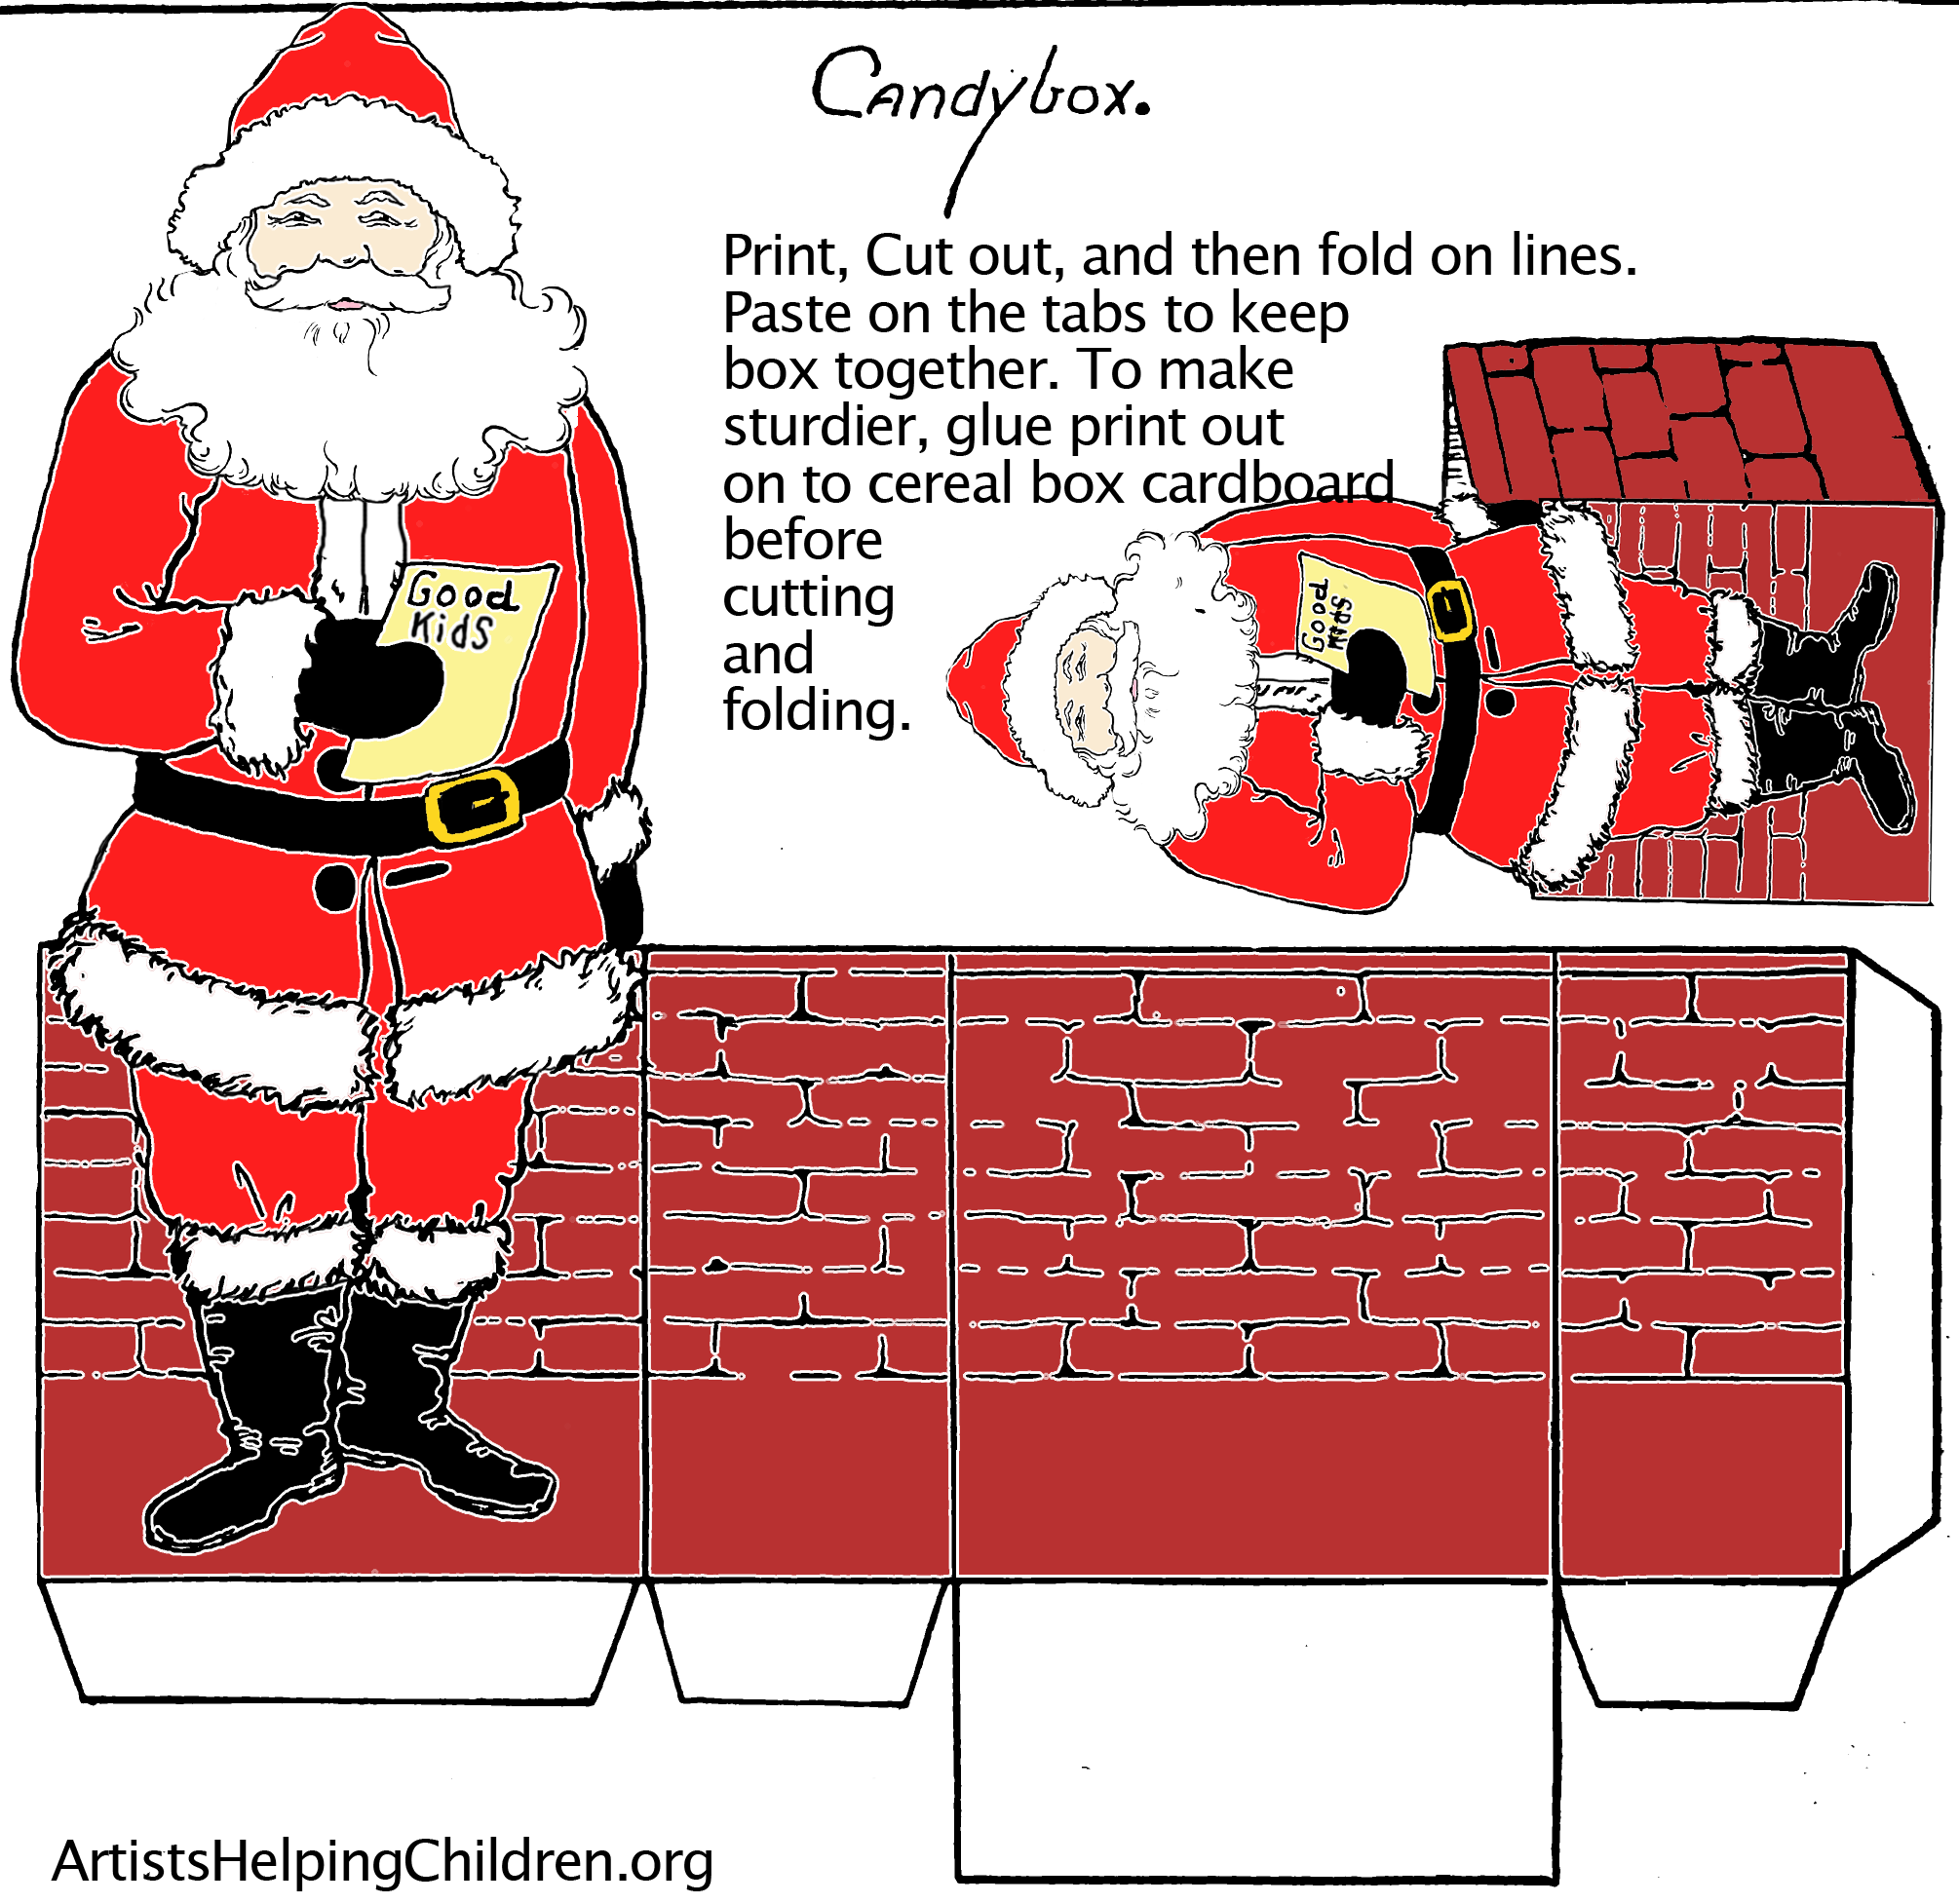 Paper Crafts Templates Make A Santa Clause Paper Candy Box With Printable Paper Craft Christmas Activity Book Playing Card Box Candy Box Template